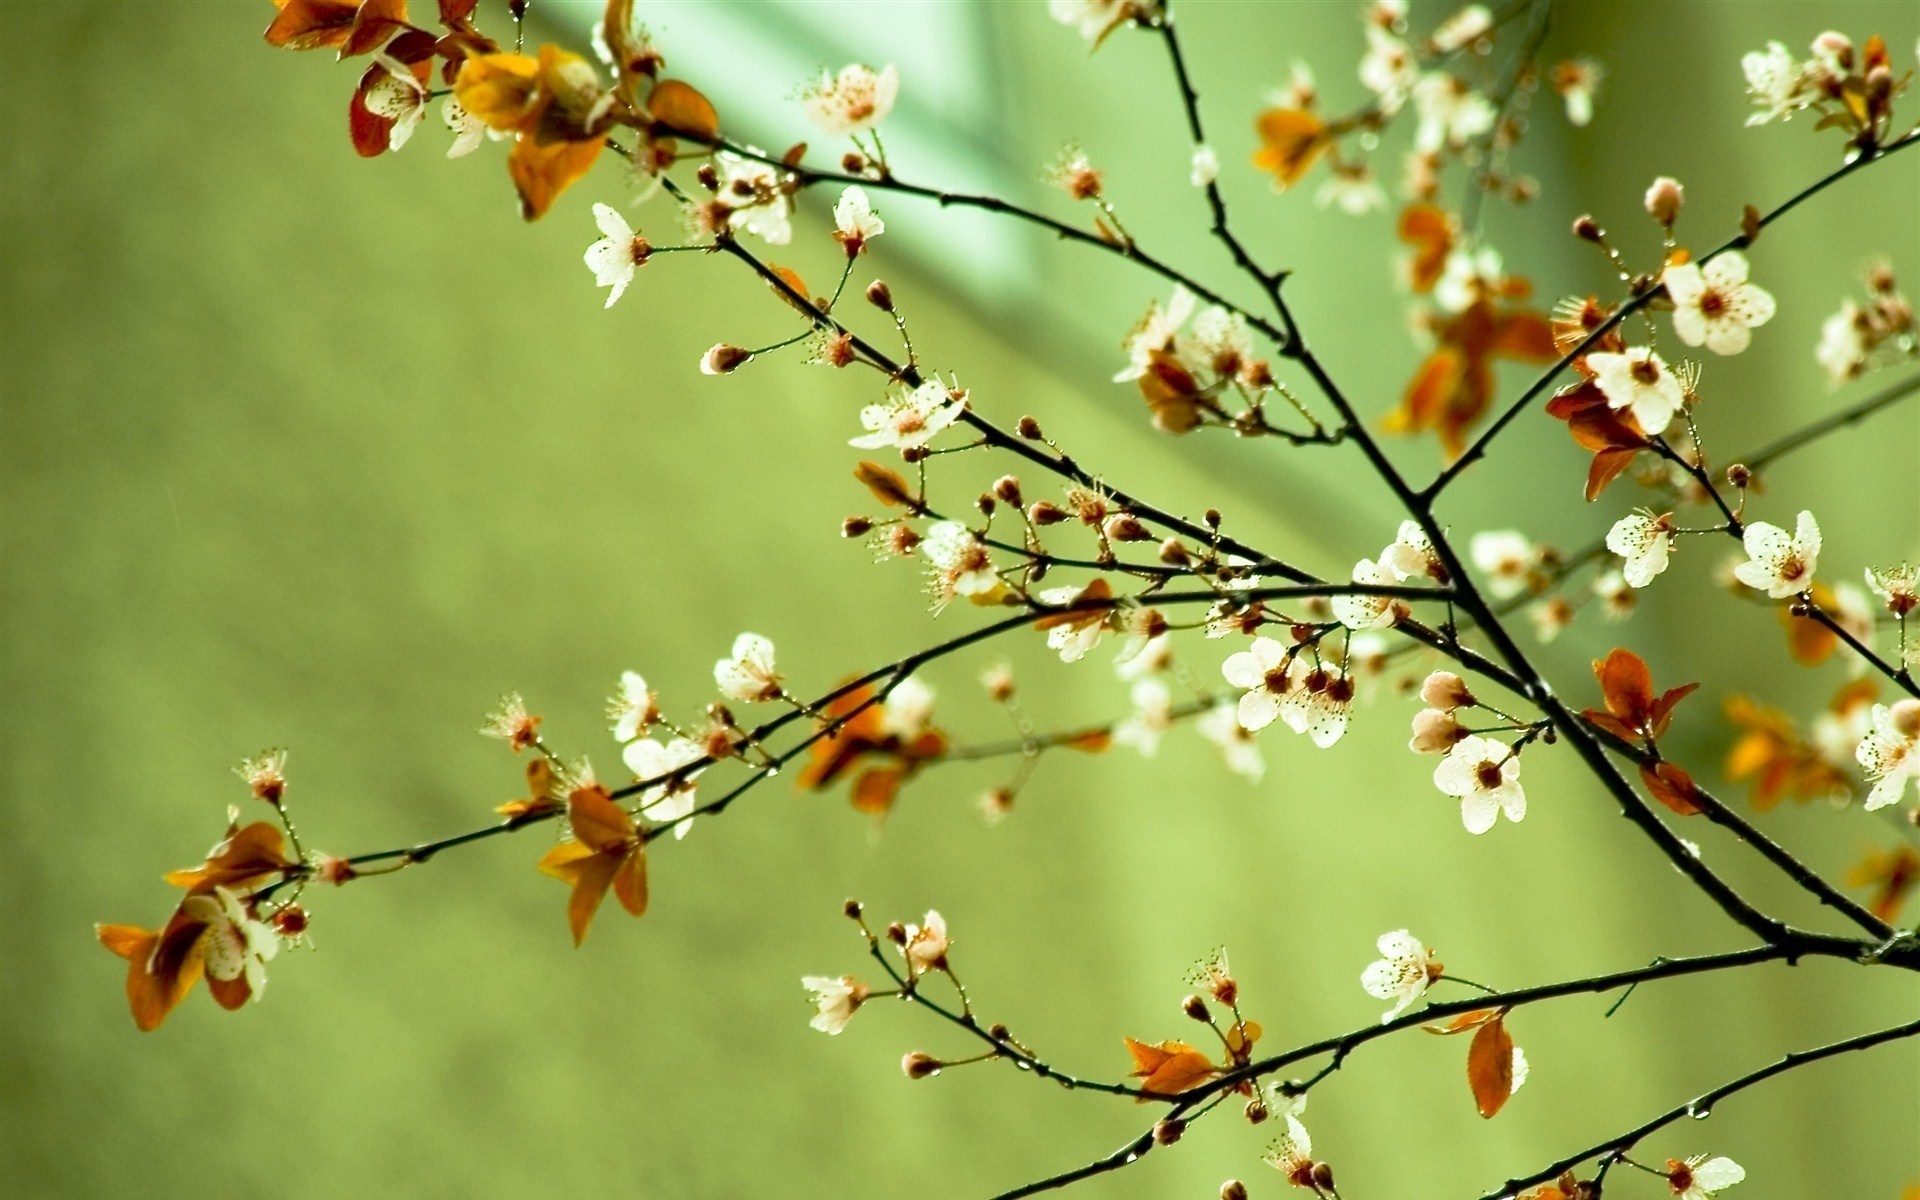 Spring Flower Background Images: Spring Images Spring Flowers HD Wallpaper And Background